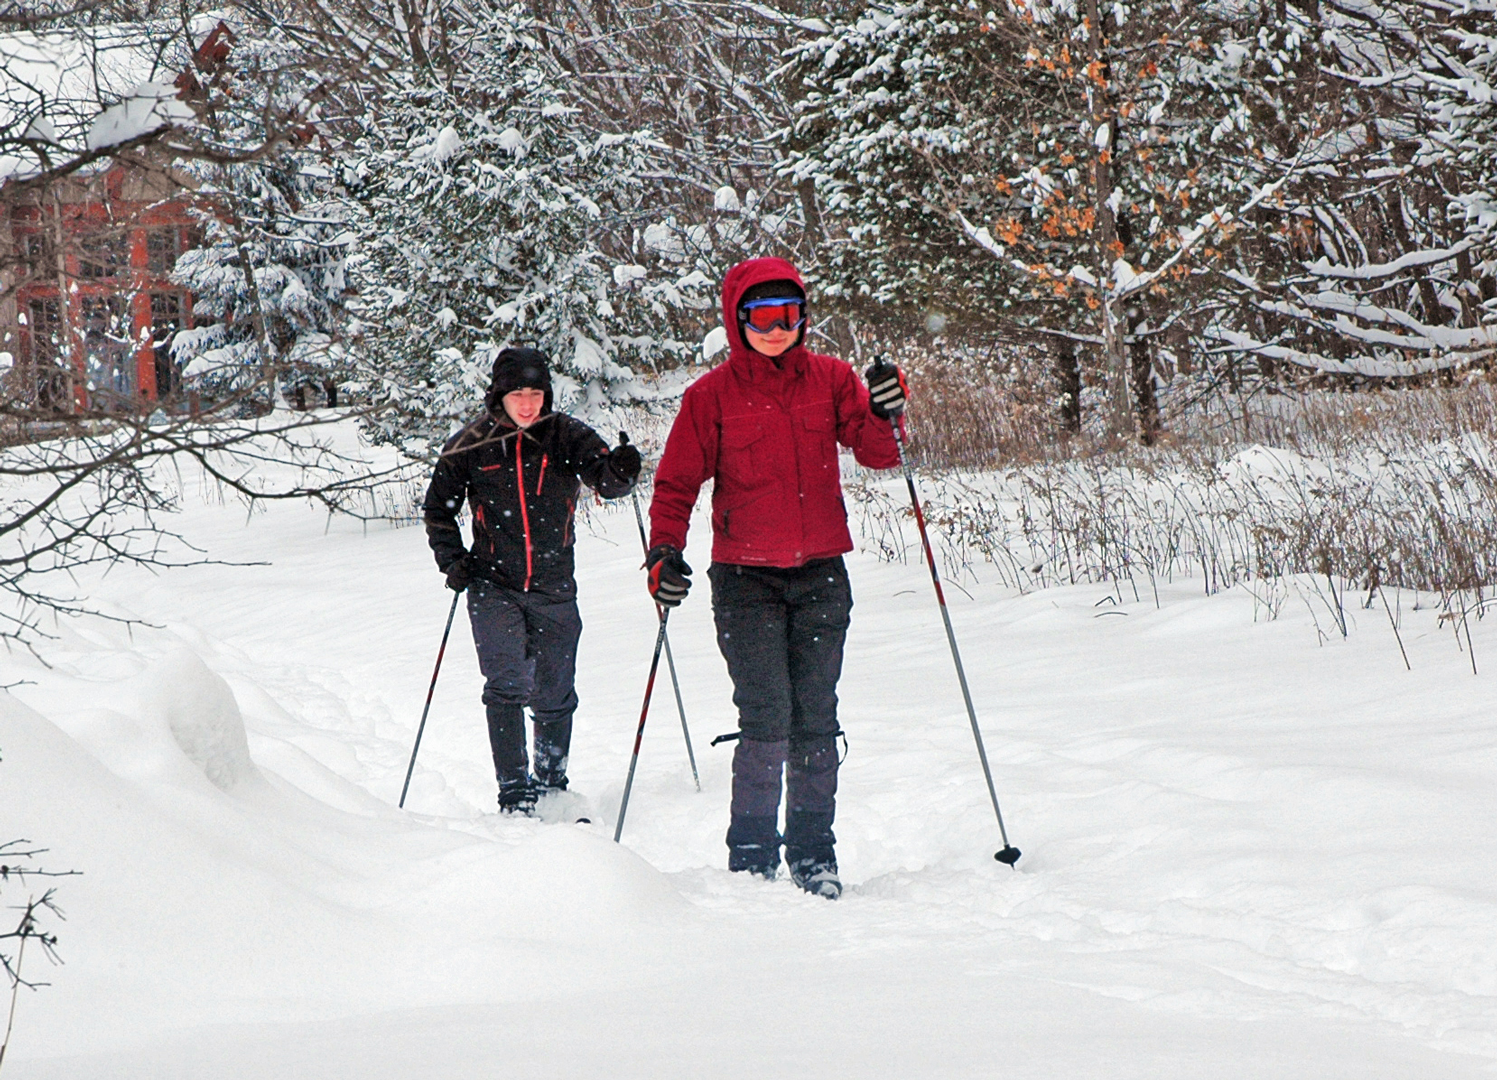 Cross-country skiing at Highbanks. Photo by Virginia Gordon